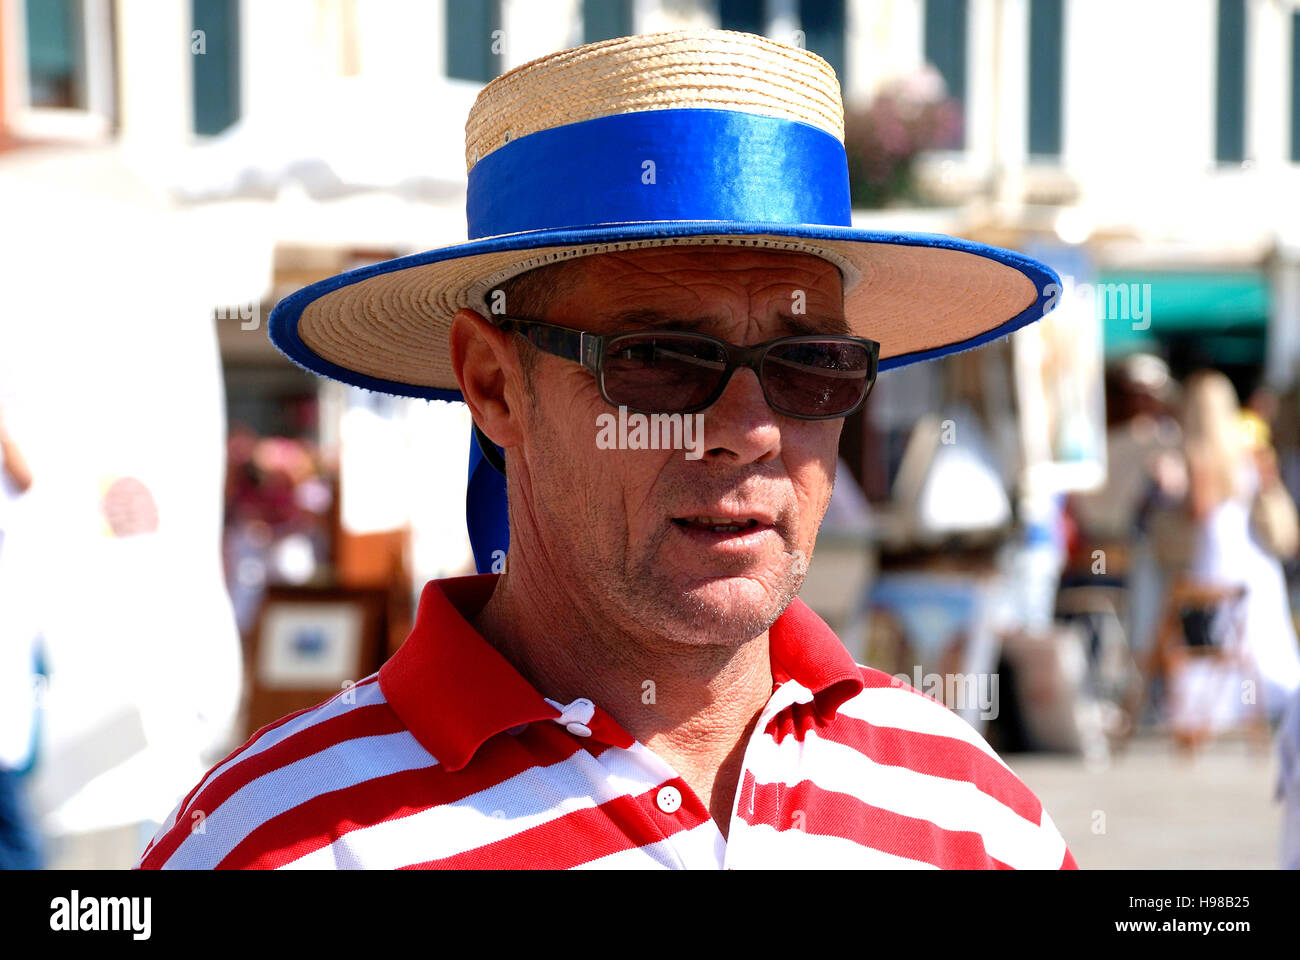 Gondolier with the typical headgear at Grand Canal of Venice in Italy. - Stock Image